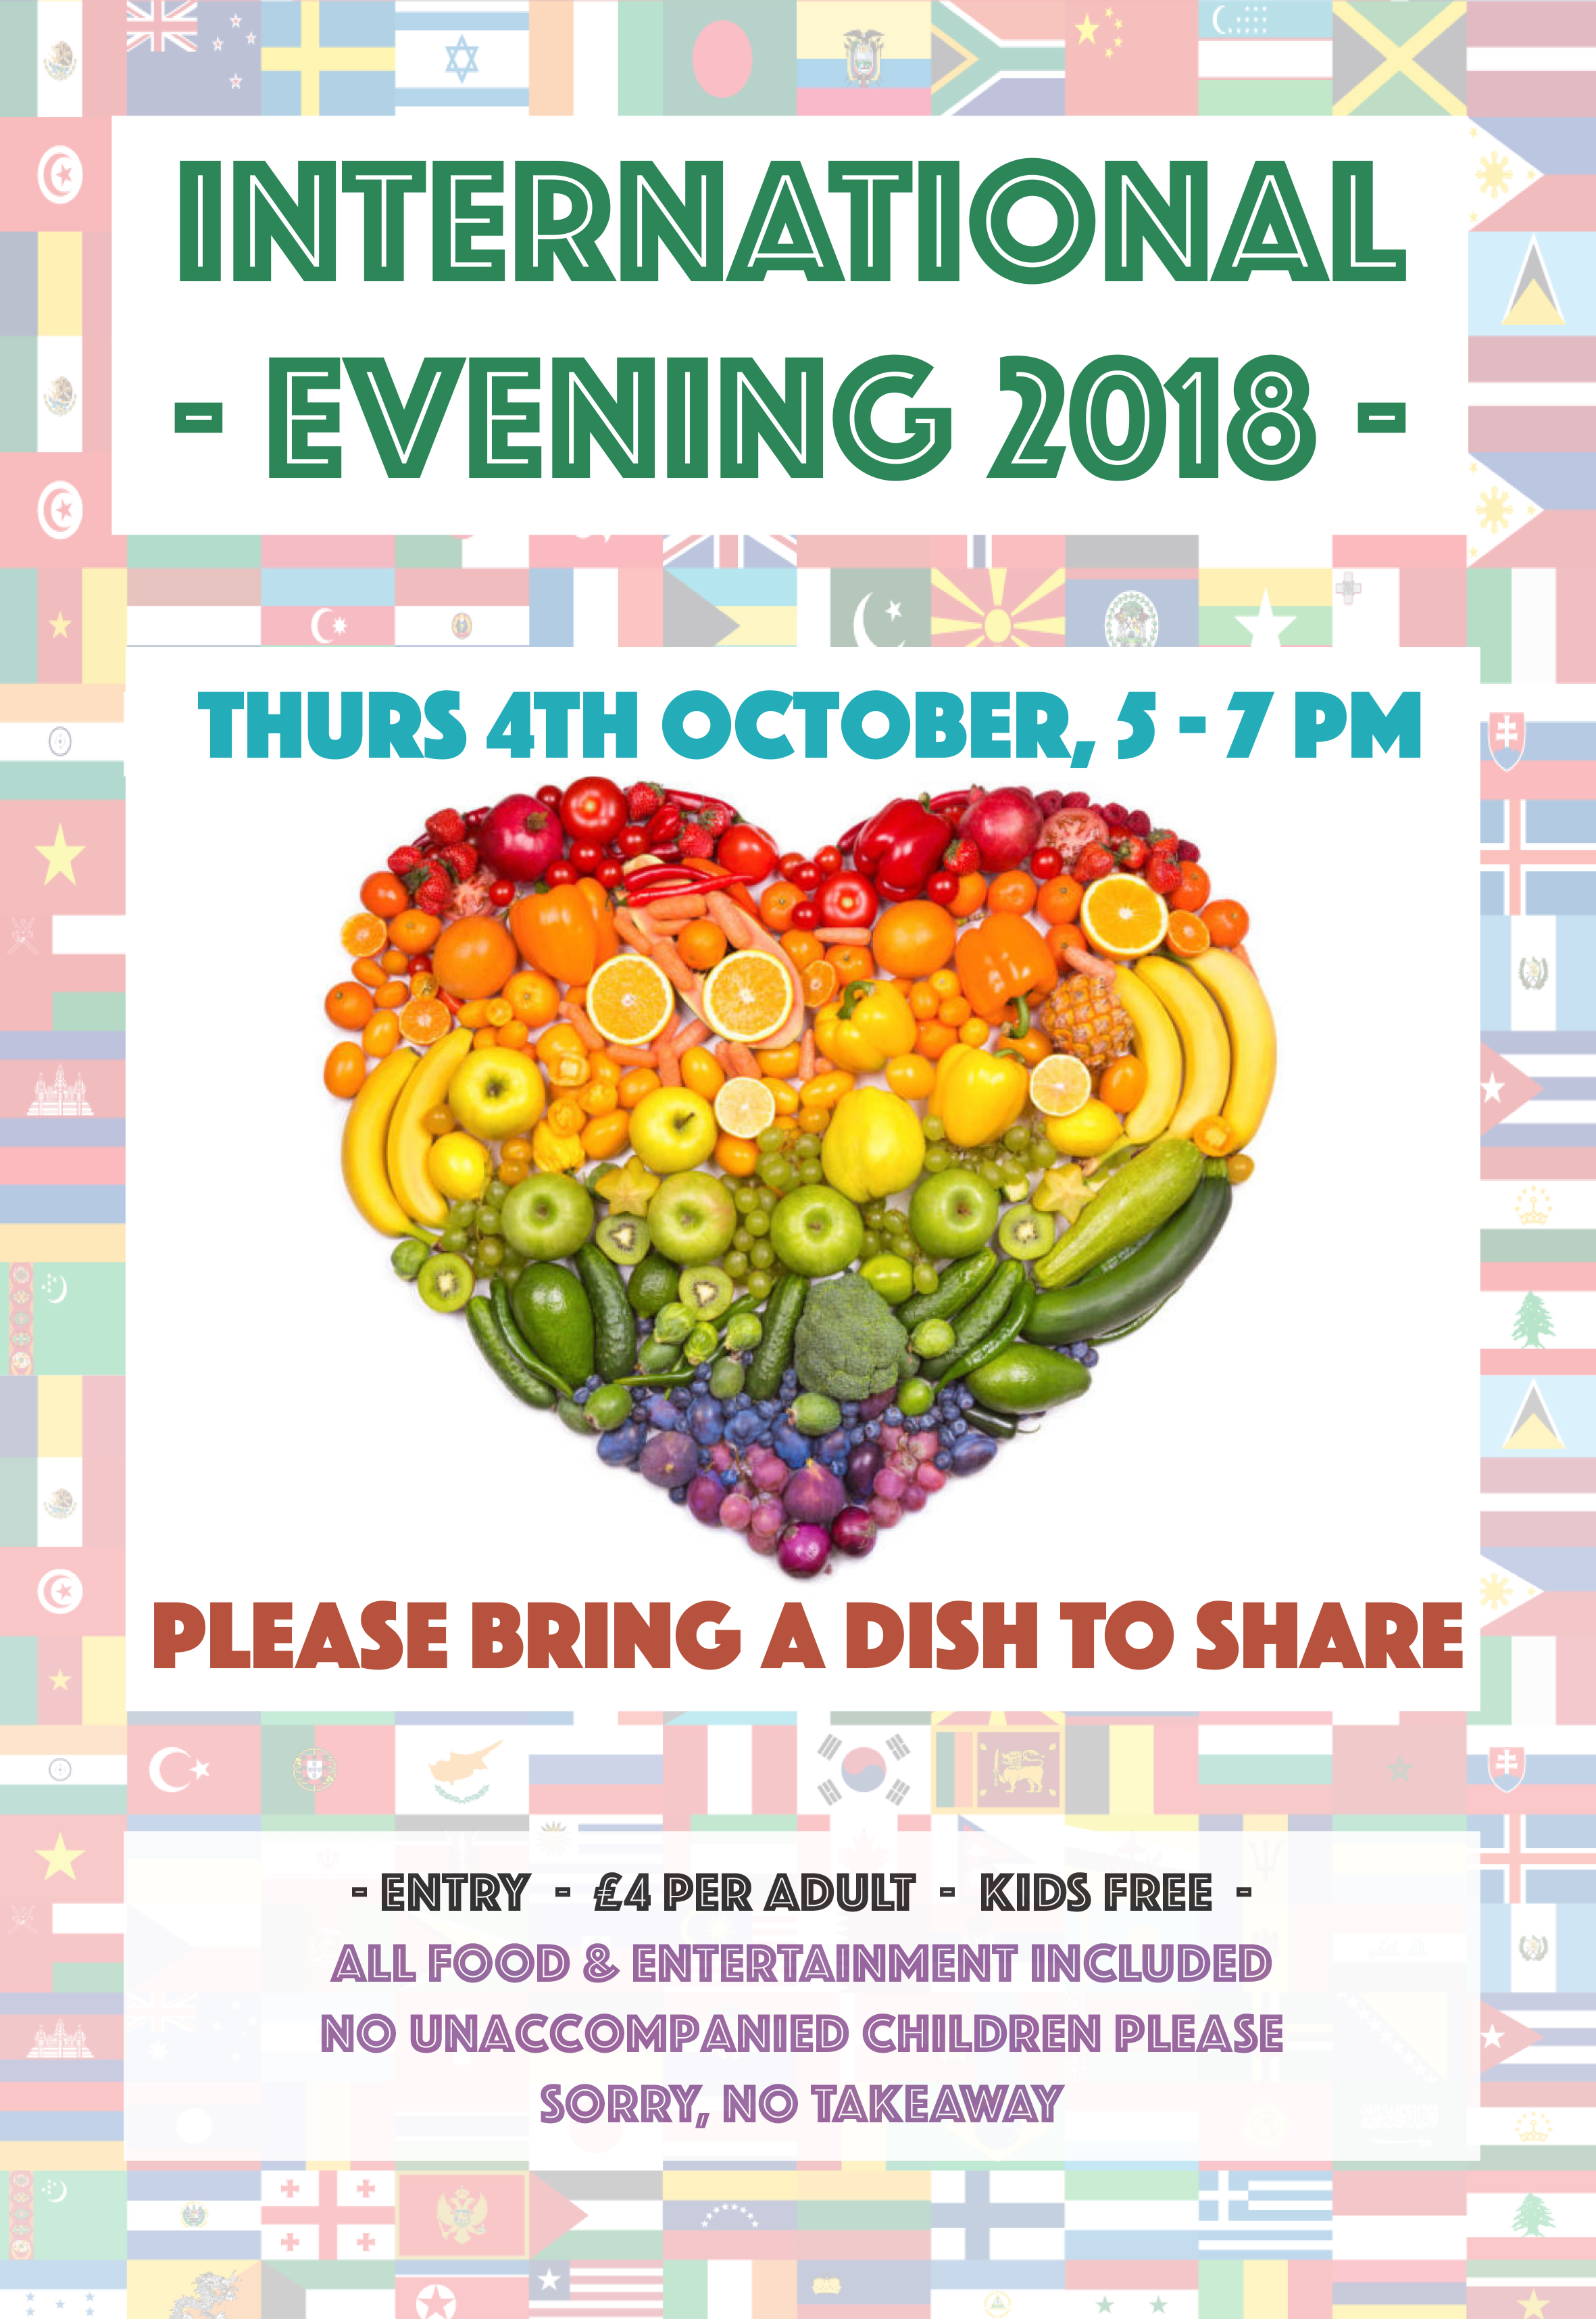 TPPS International Evening 2018